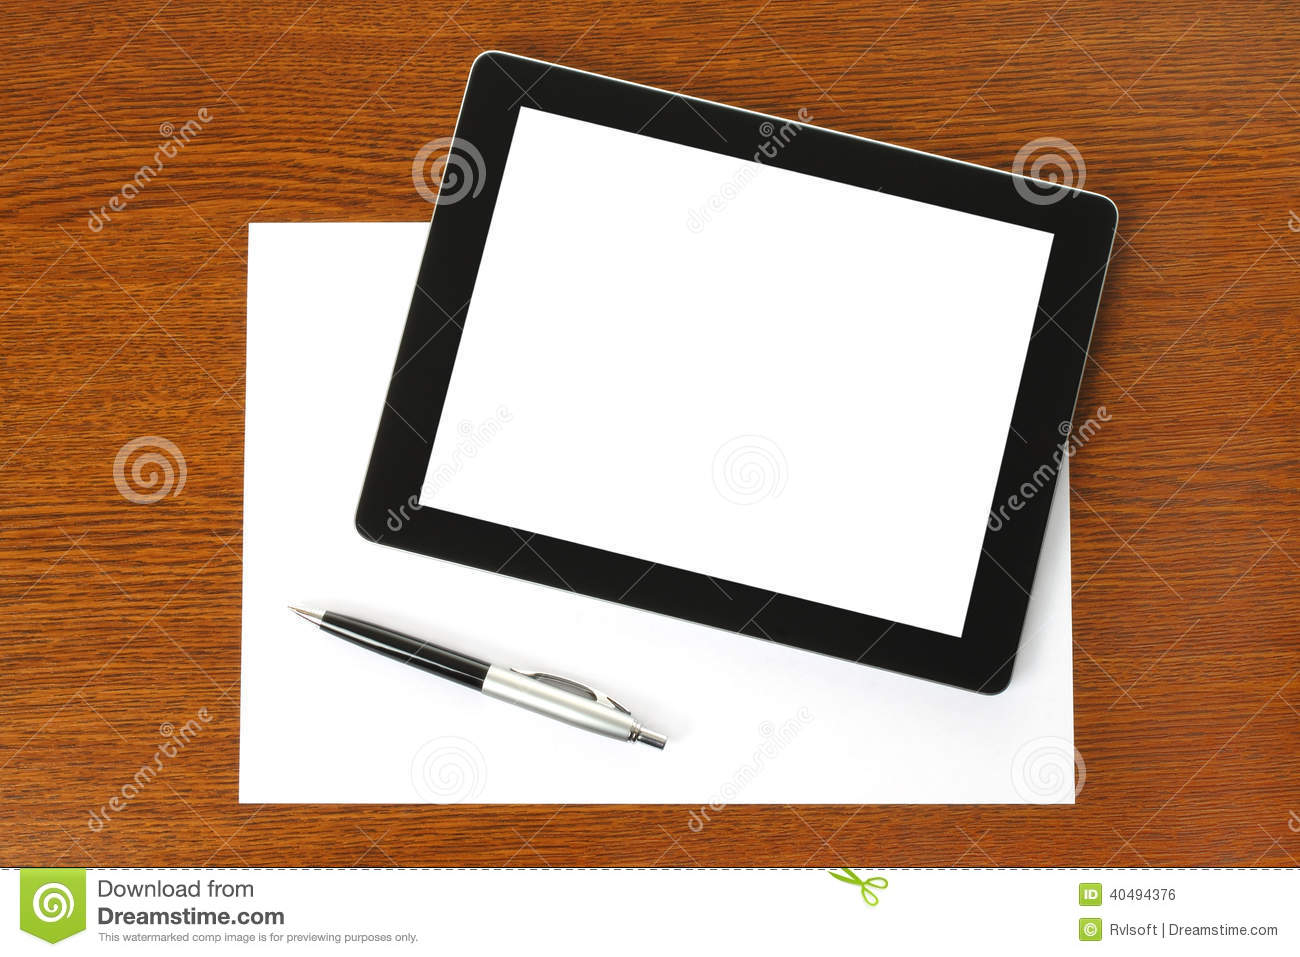 tablet pc research paper Microsoft tablet pc is a a crossword application developed to mirror the experience of a paper crossword puzzle on a tablet pc microsoft center for research.